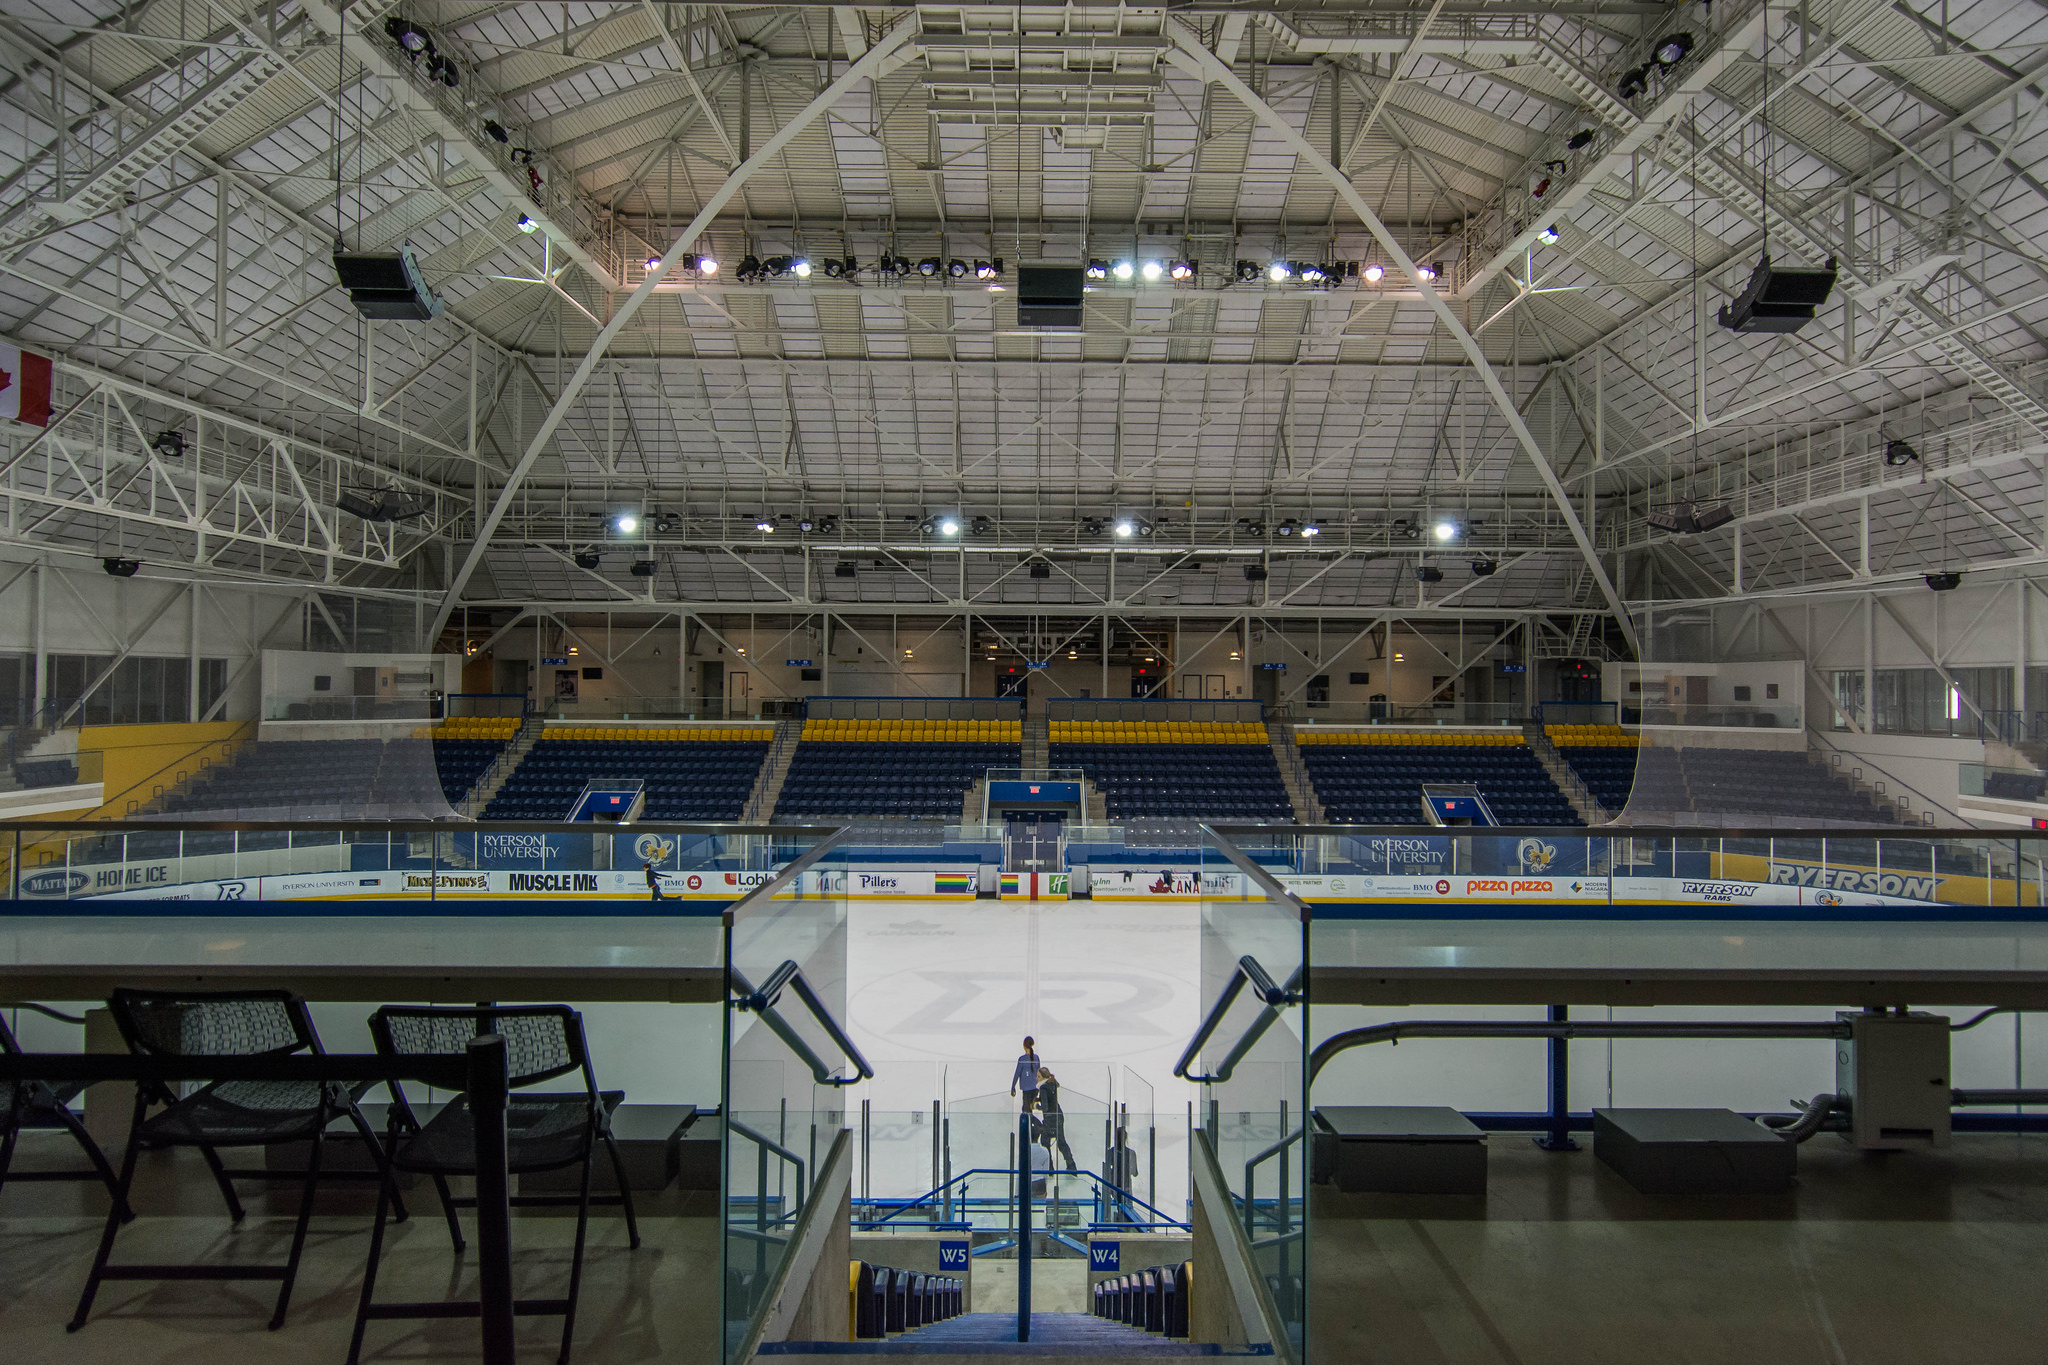 Maple Leaf Gardens (1/320s, f/4, ISO800)